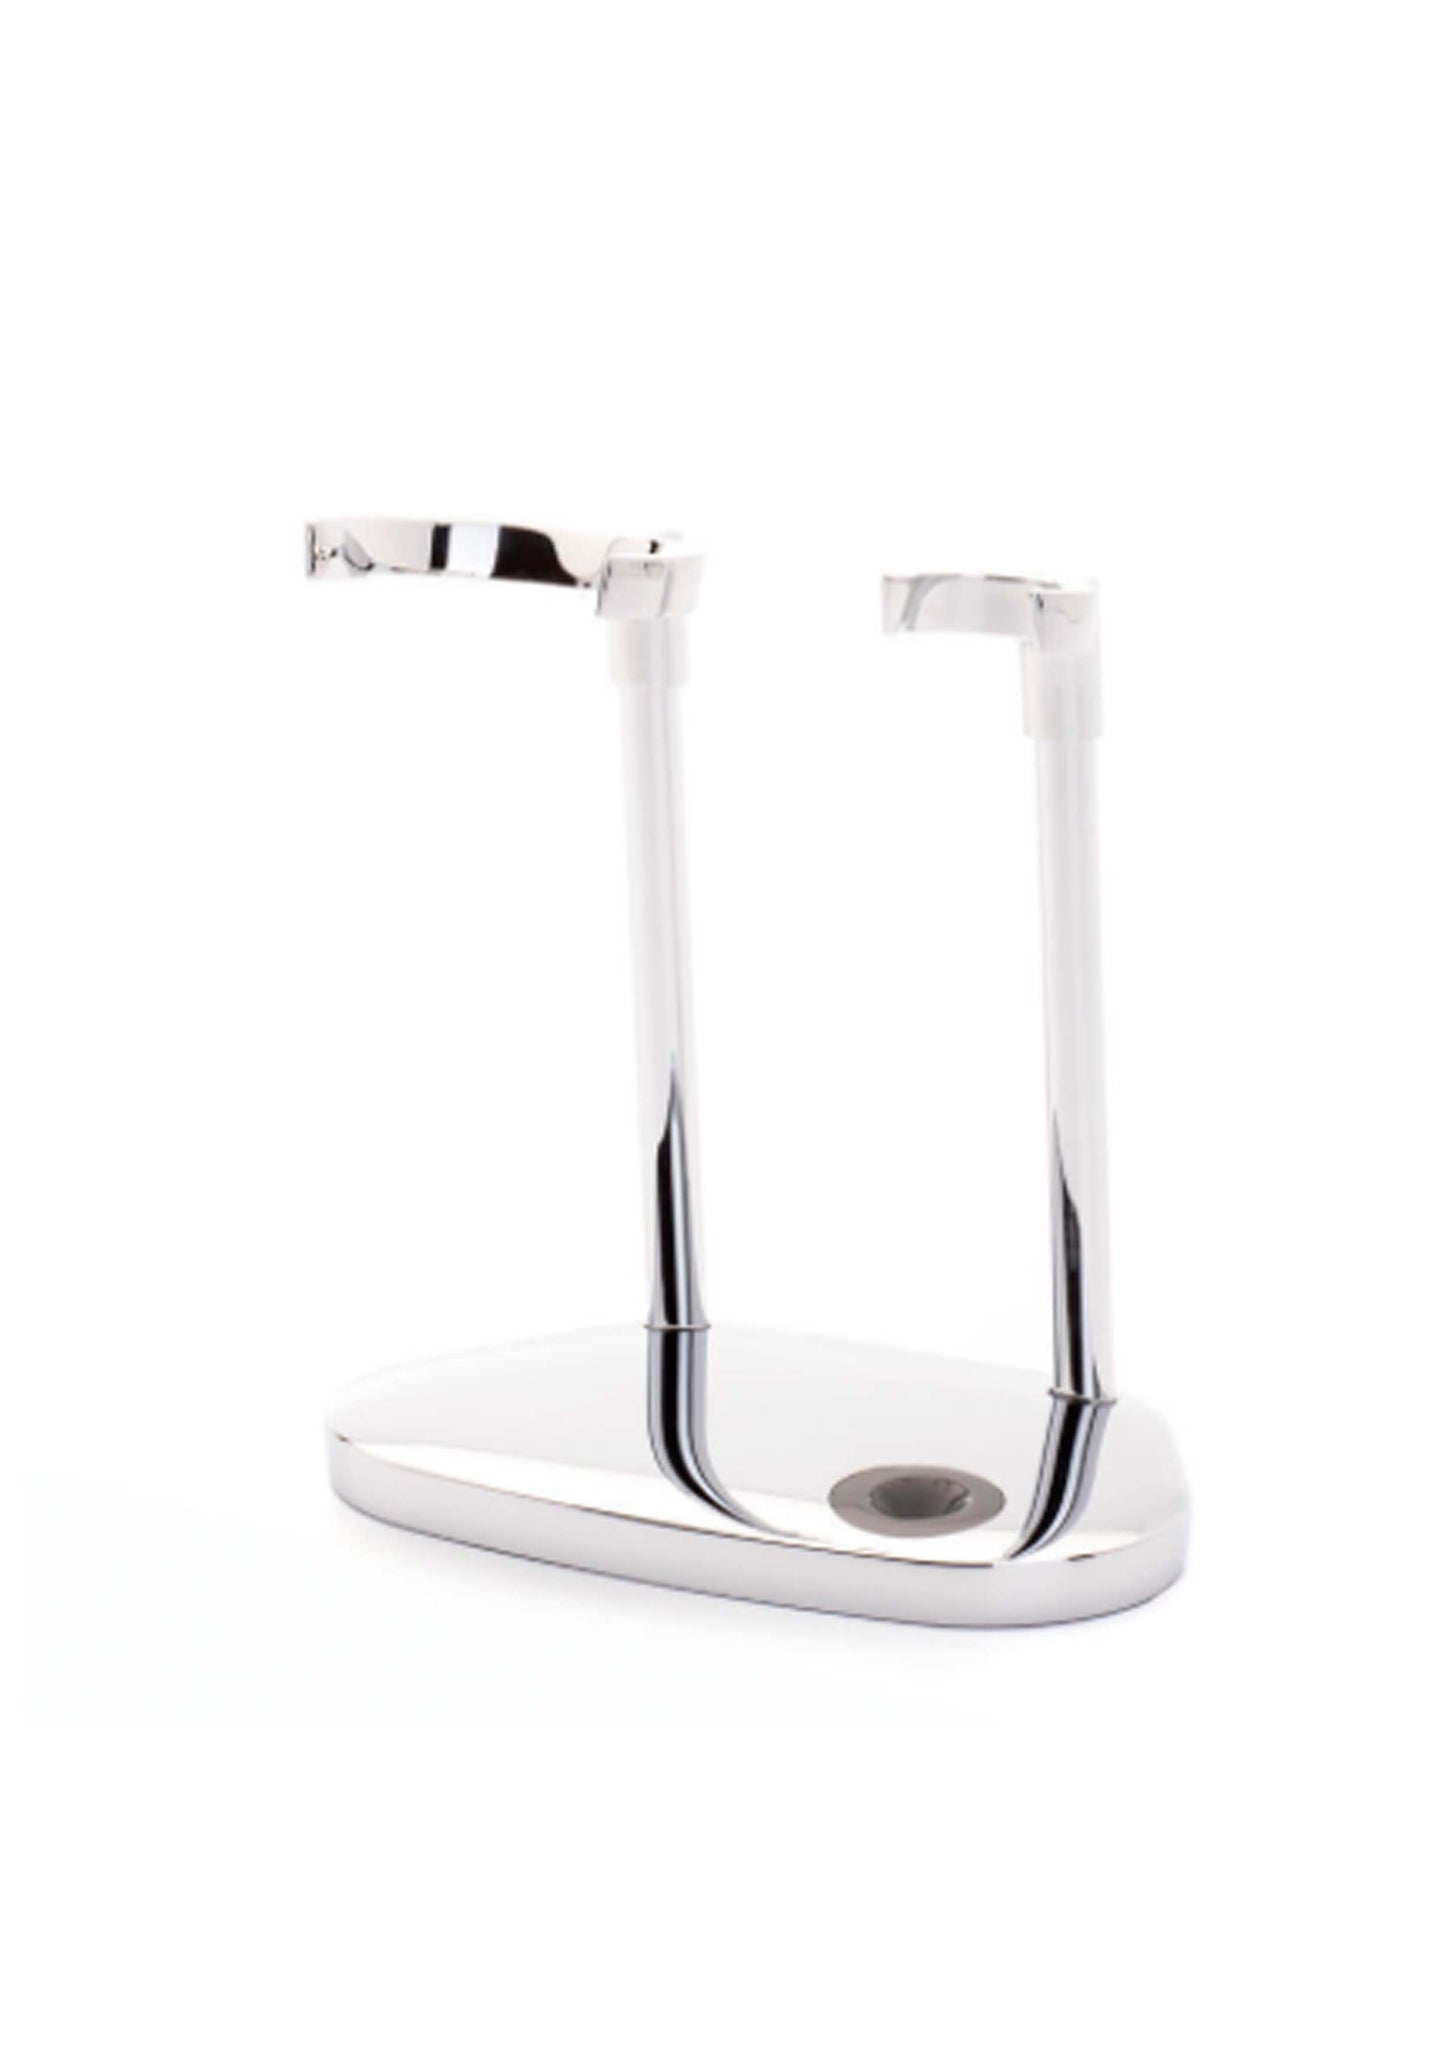 Muhle, CHROME STAND FOR KOSMO SHAVING BRUSH & RAZOR RHM87 Double Stand